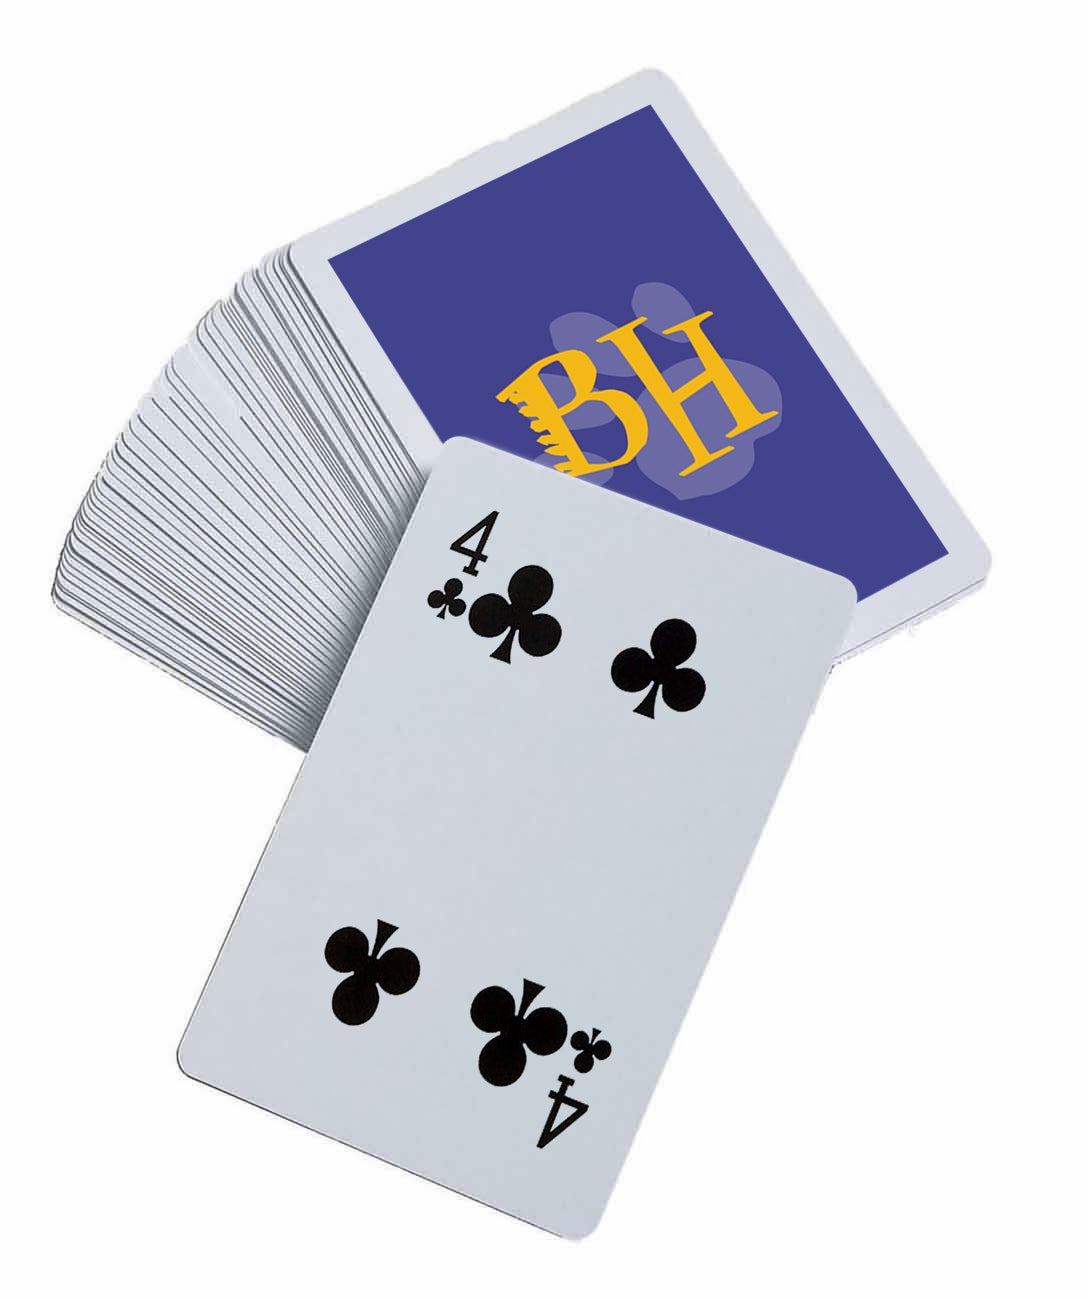 Image of B&H Playing cards